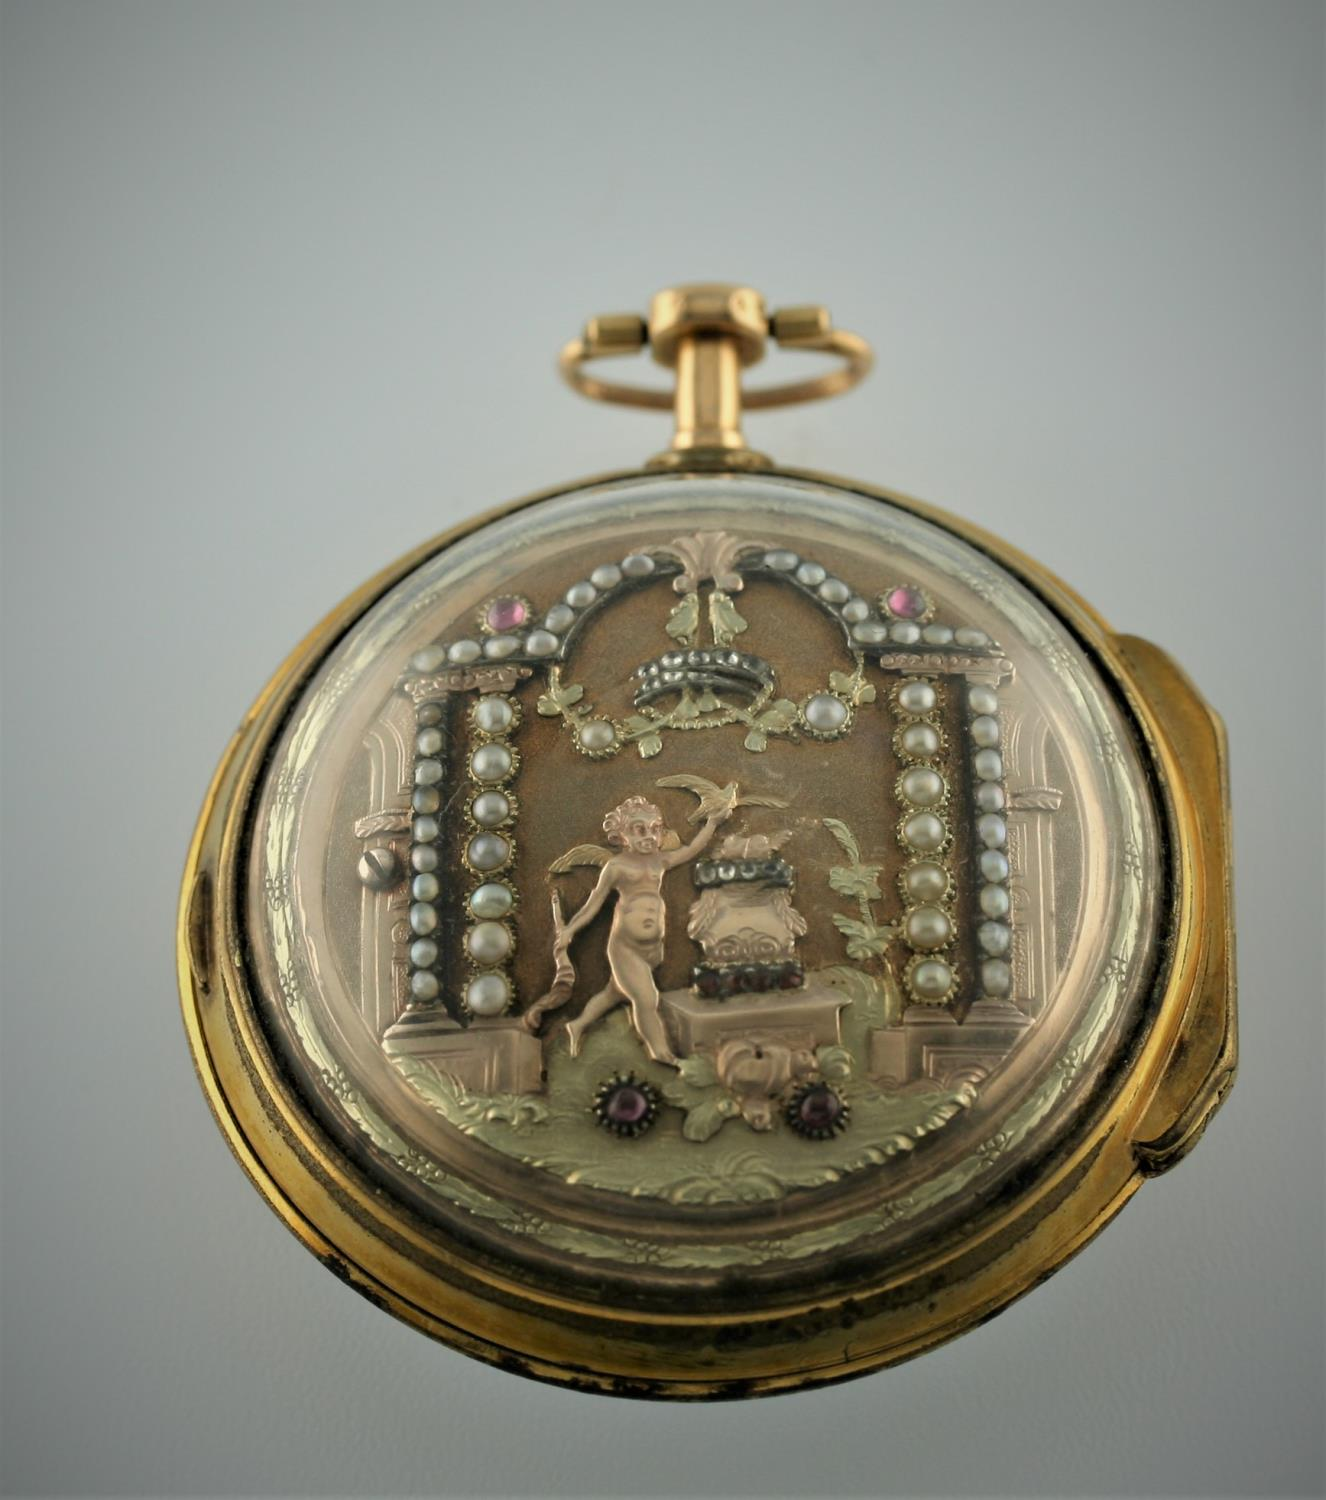 A SWISS LATE 18TH CENTURY PAIR CASED POCKET WATCH BY JEAN NICOLAS MENU the signed white enamel - Image 3 of 10